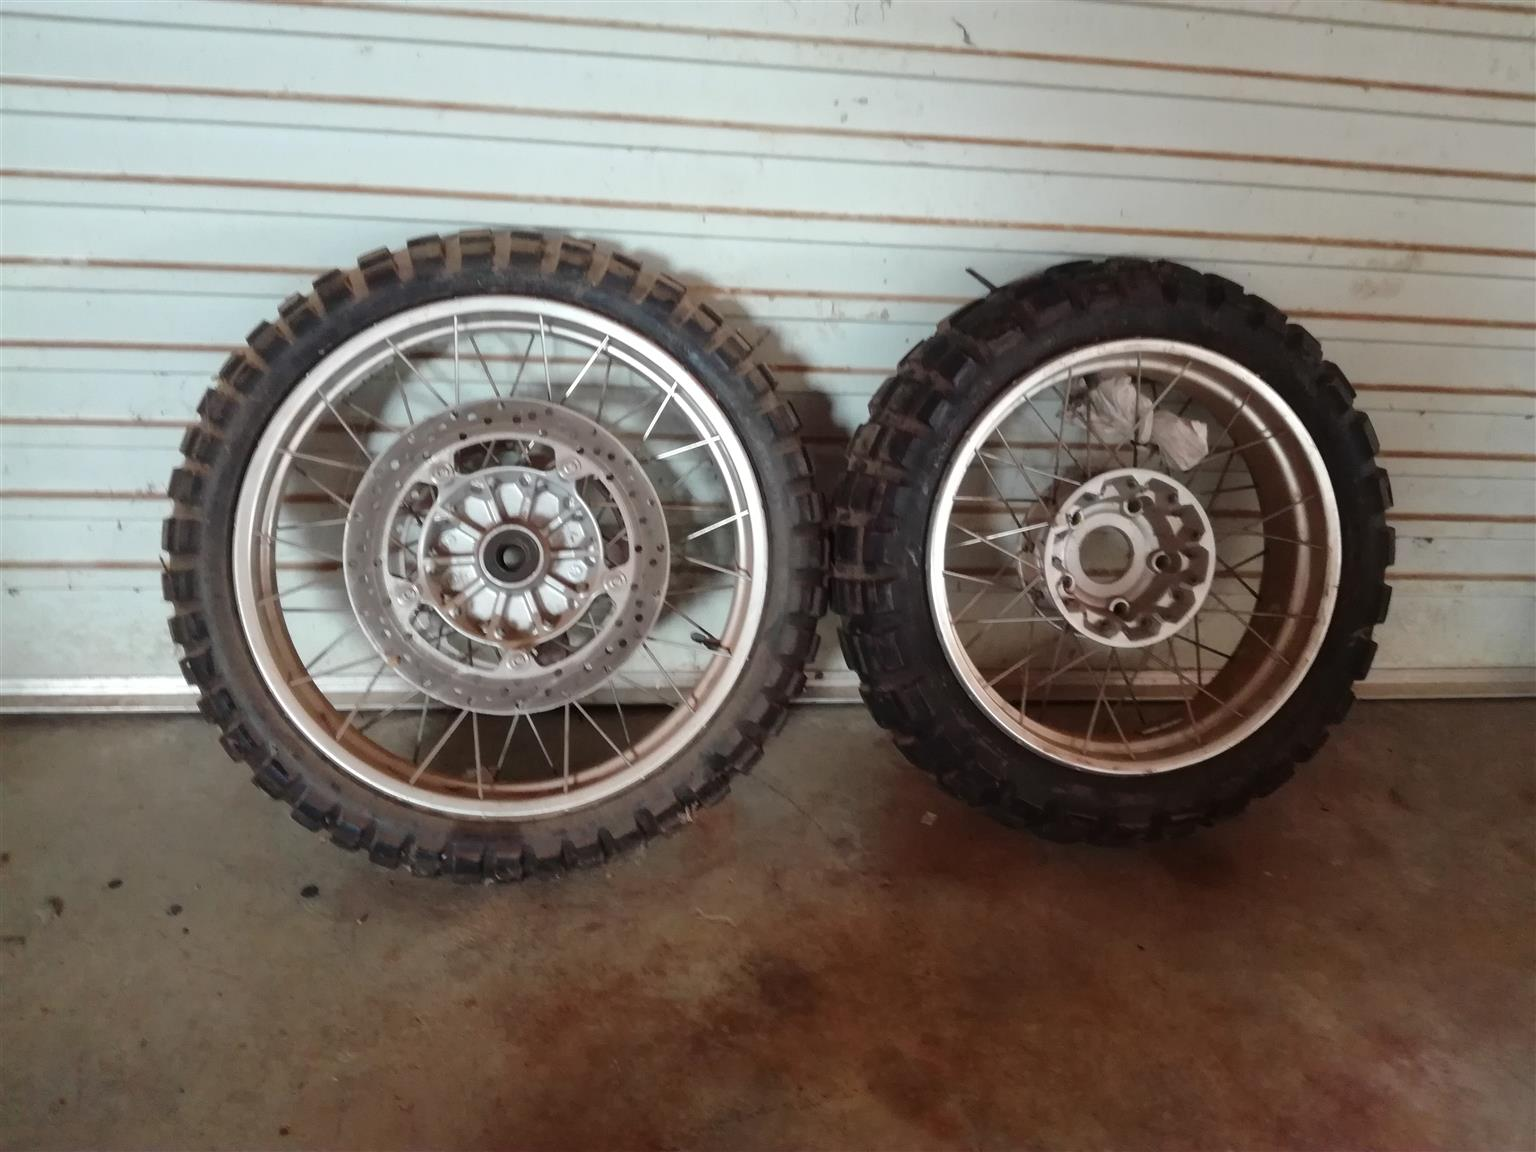 GS 1200 Complete wheels and standard exhaust system